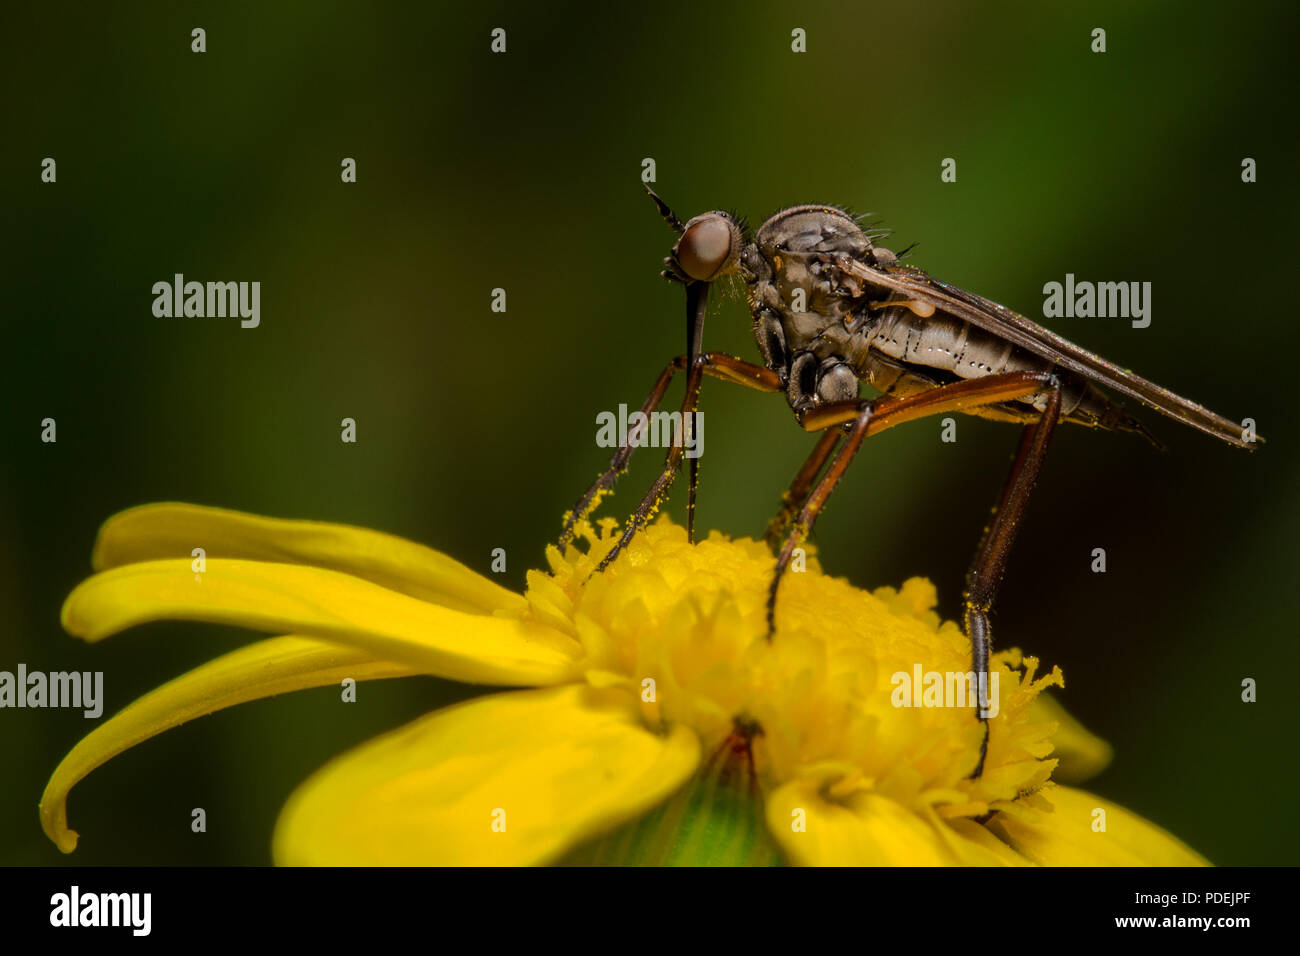 Robber fly (Empis opaca) sitting on a Bitou flower, taken inside the Koeberg nature reserve. - Stock Image